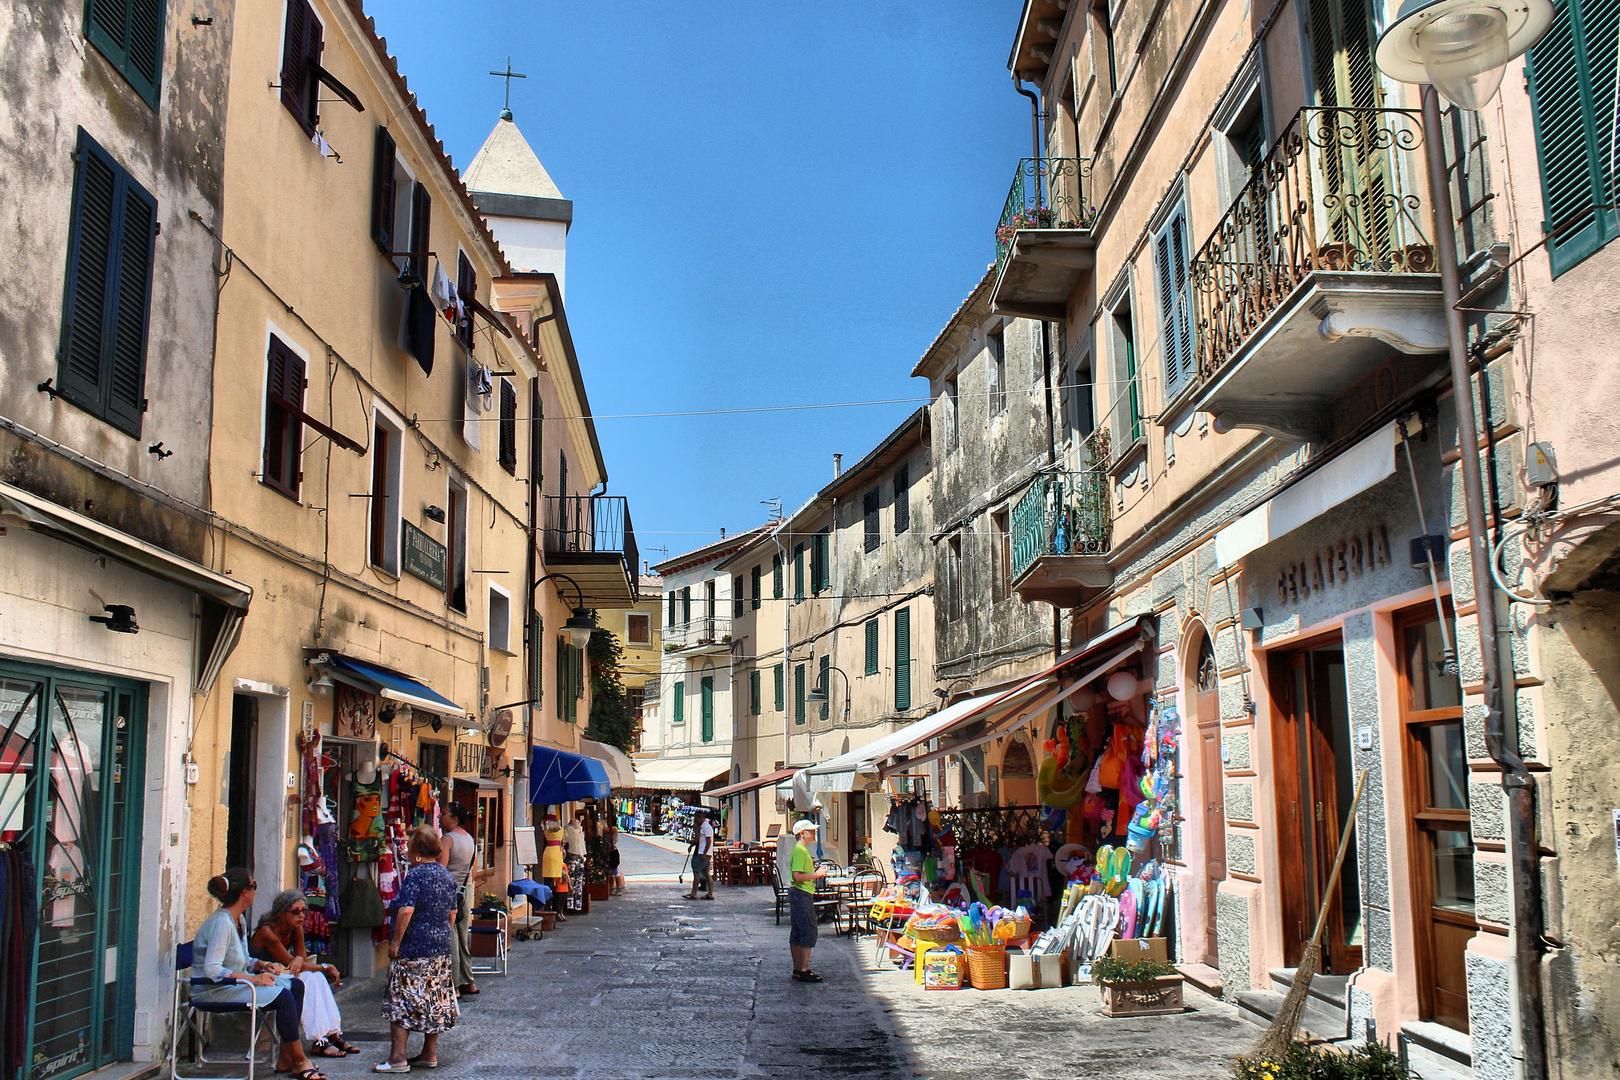 In the streets of Capoliveri - No. 1